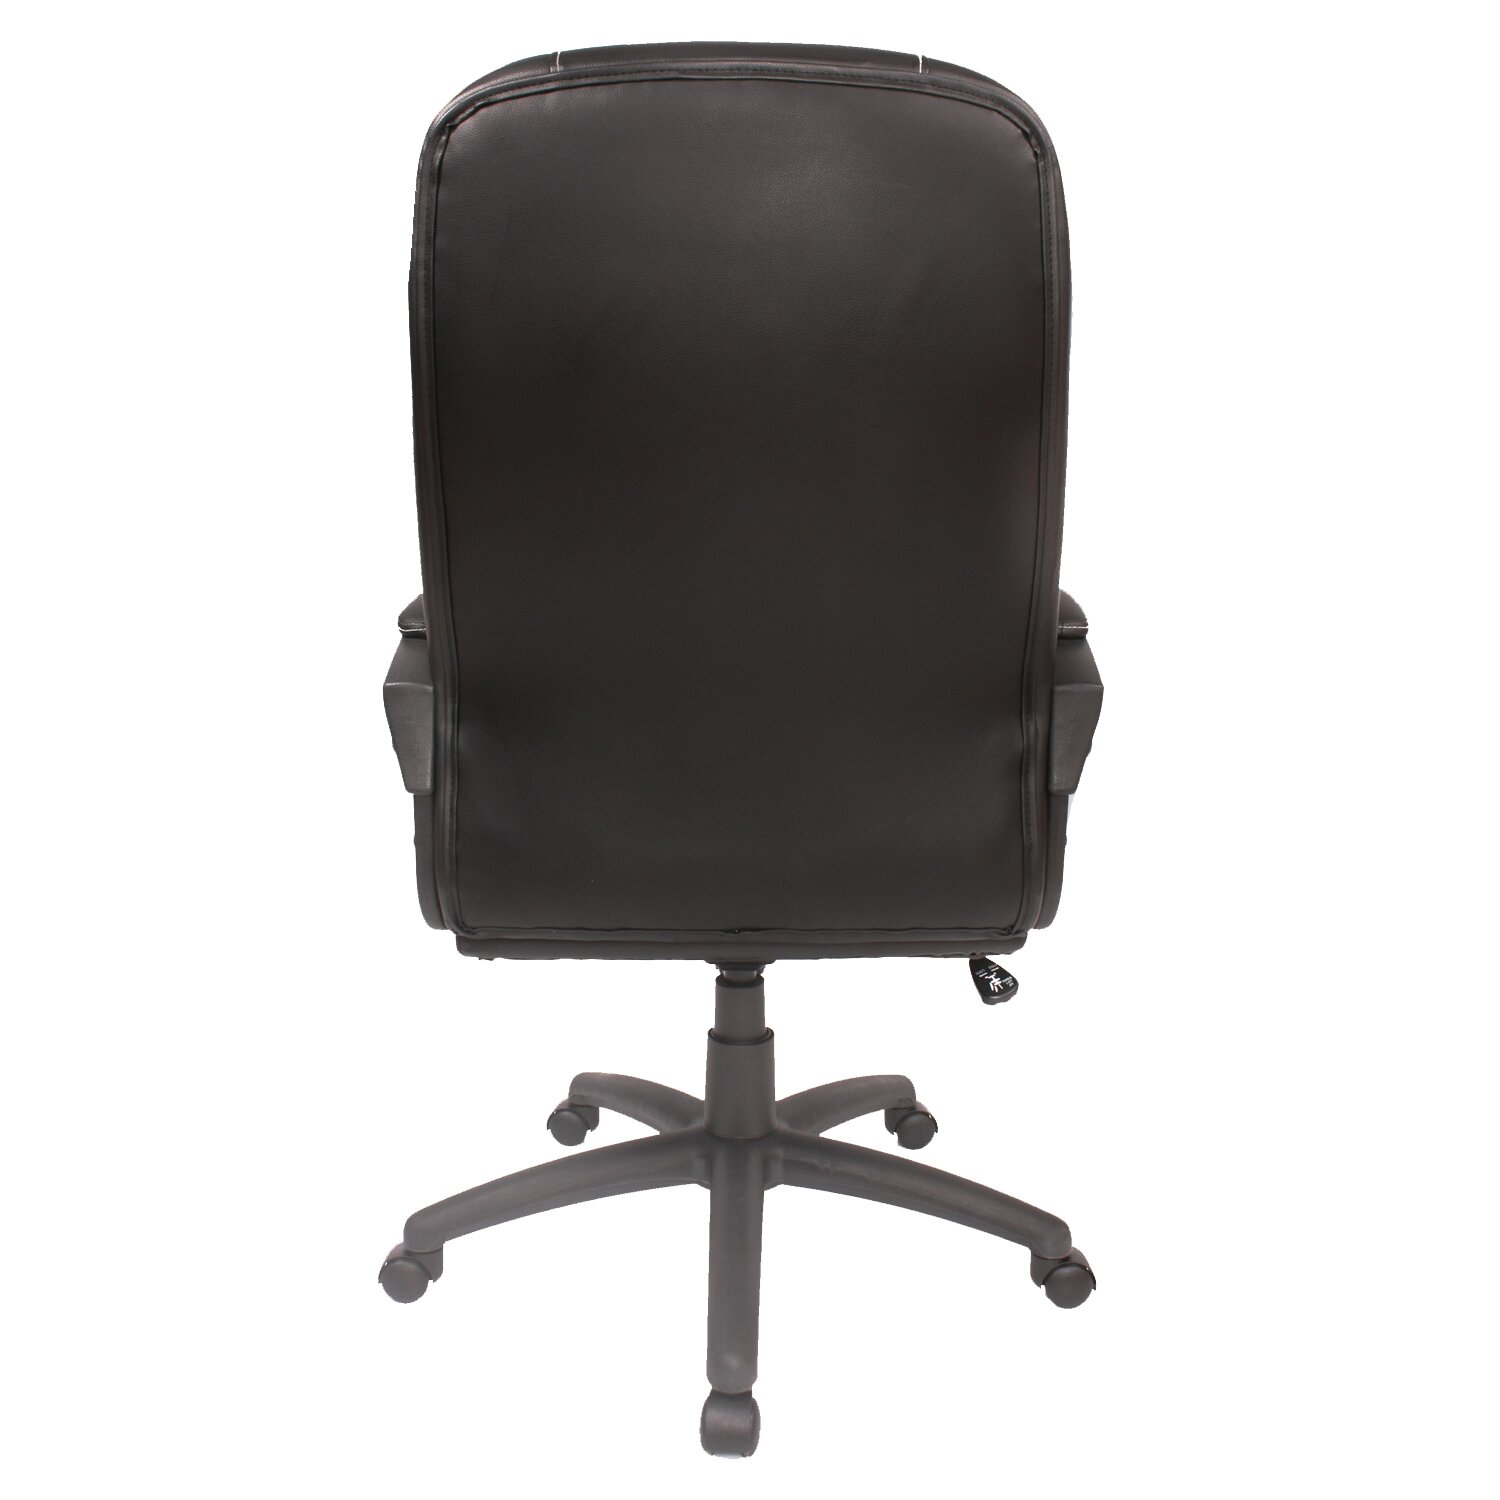 comfort products midback leather desk chair - Gray Leather Office Chair